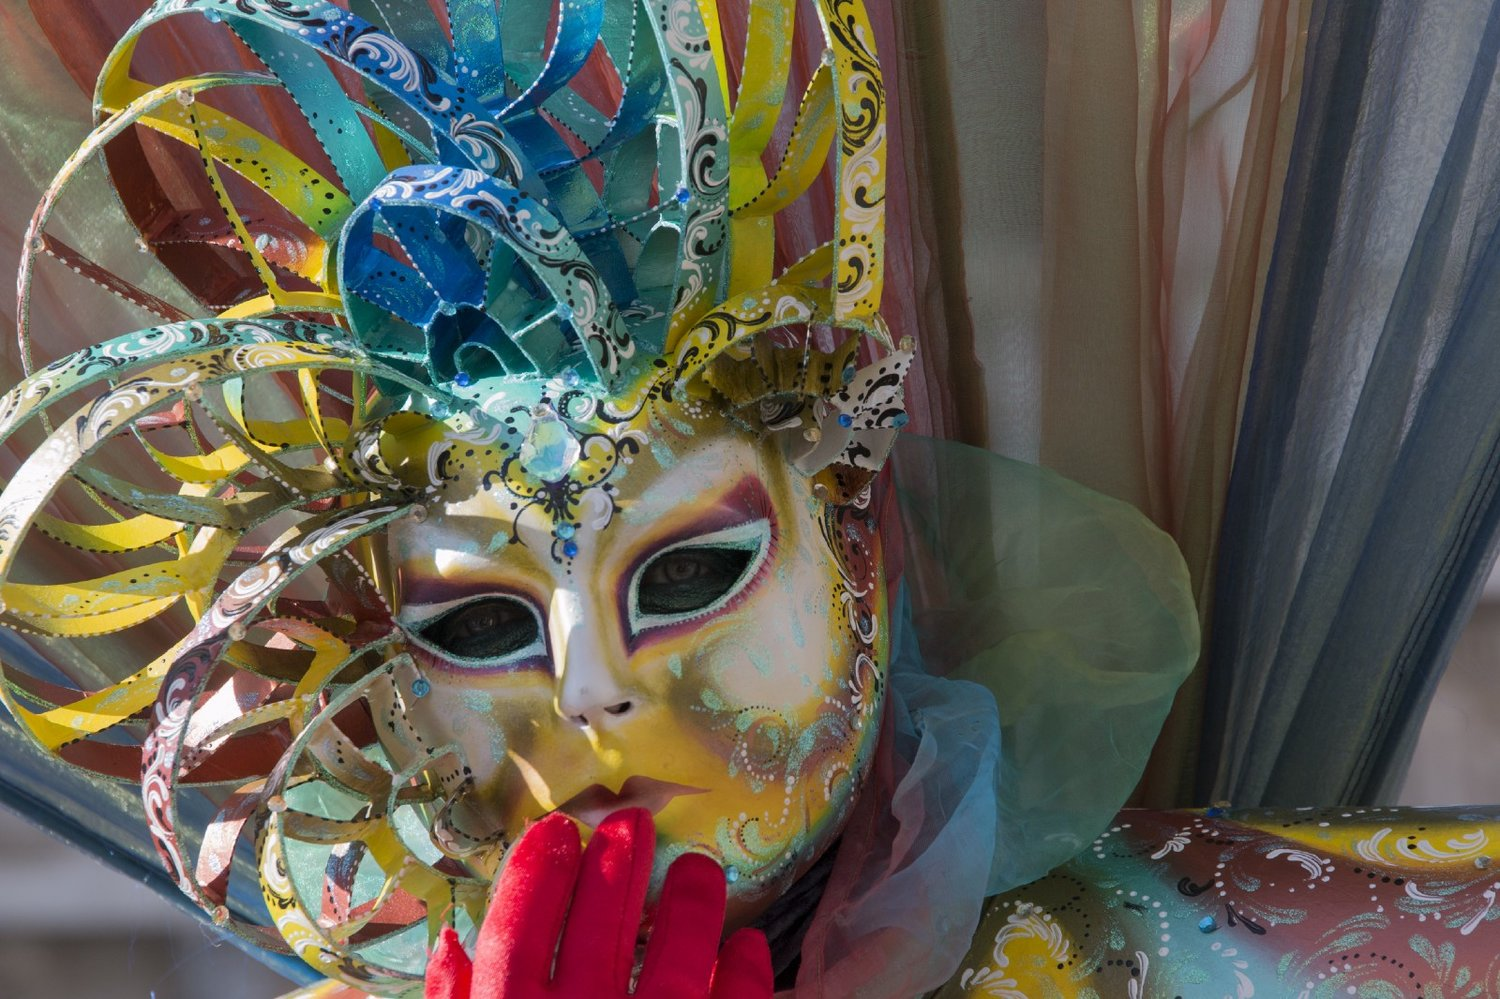 An intriguing mask ready to capture you in Venice Carnival panthomime! Credit: I'm|Possible.